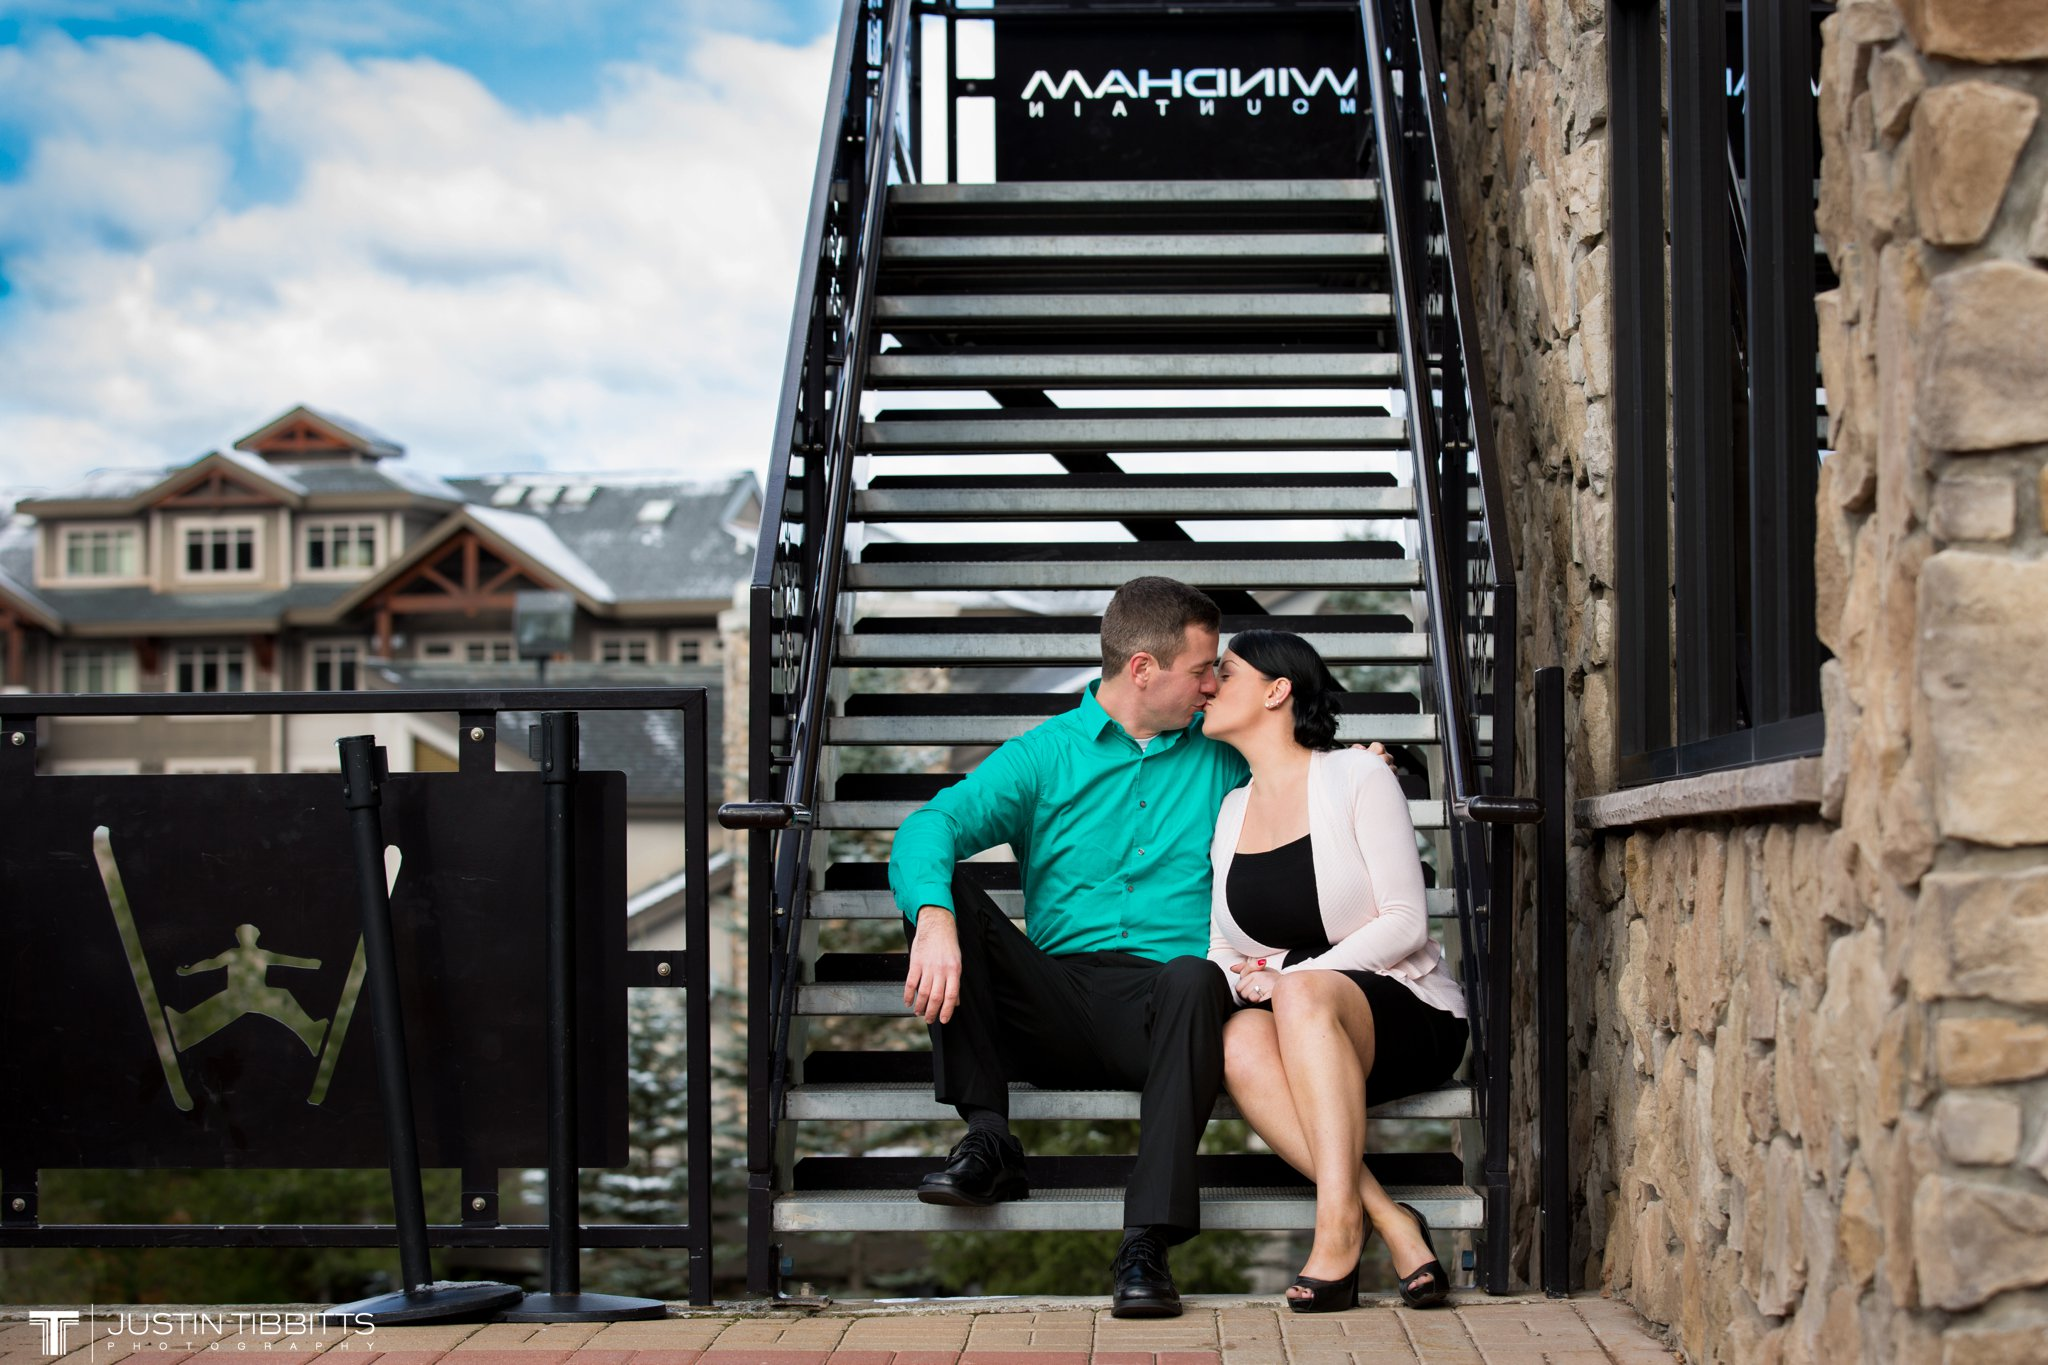 Justin Tibbitts Photography Kristie and Gregs Windham Mountain Resort Engagement Shoot-36-2